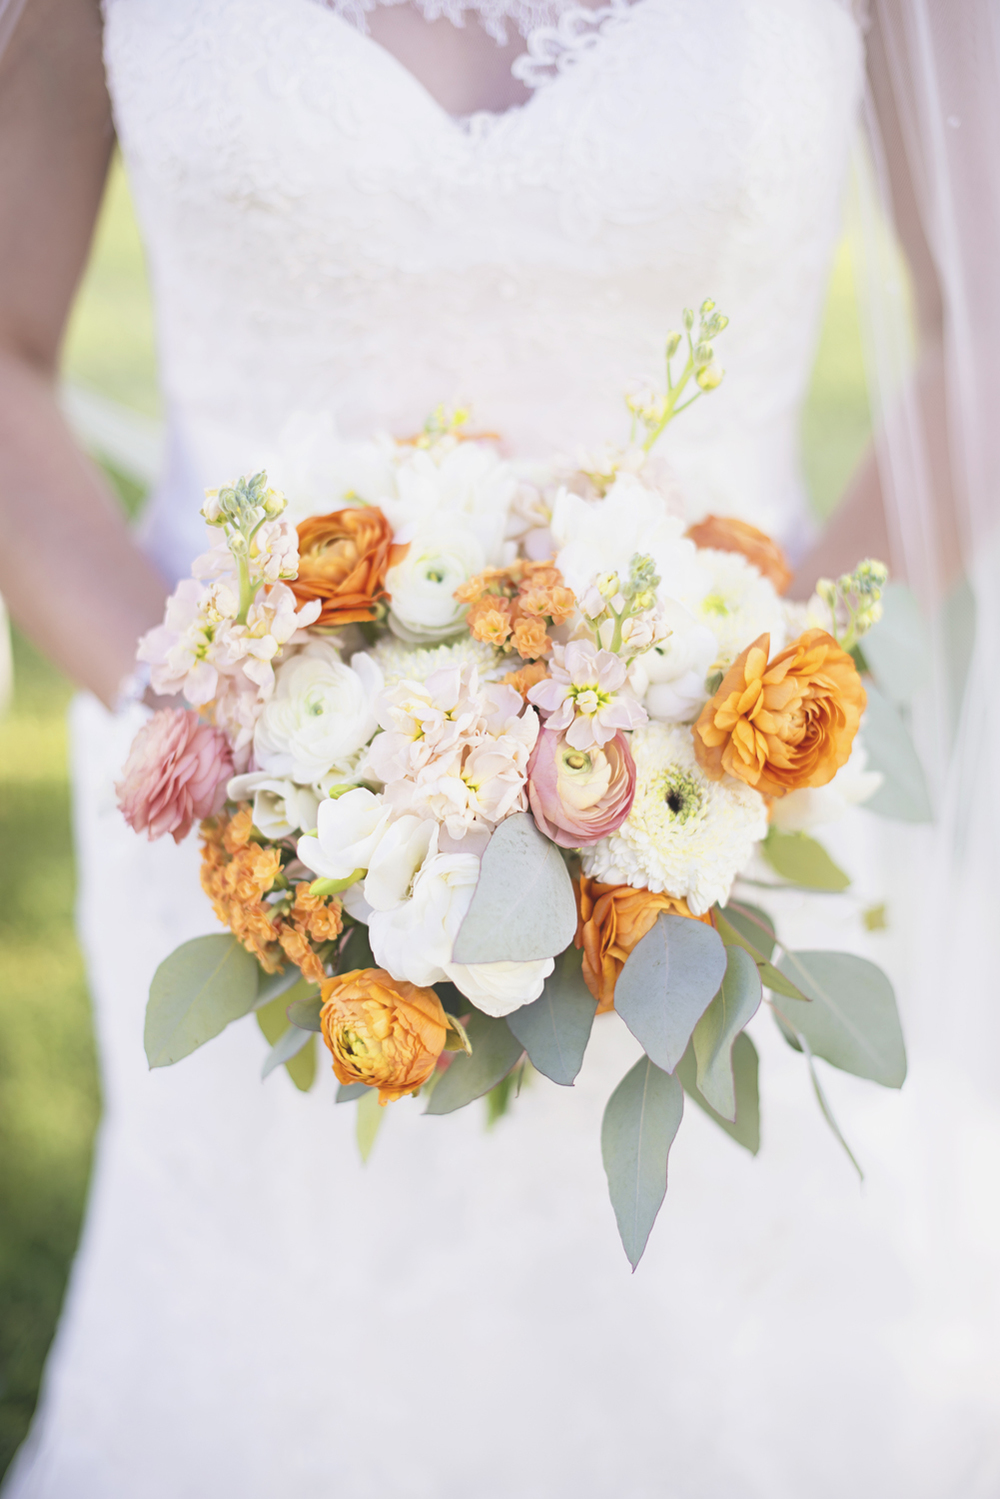 Inn at Warner Hall Wedding P  hotography | Blush, tangerine, white bridal bouquet with eucalyptus leaves